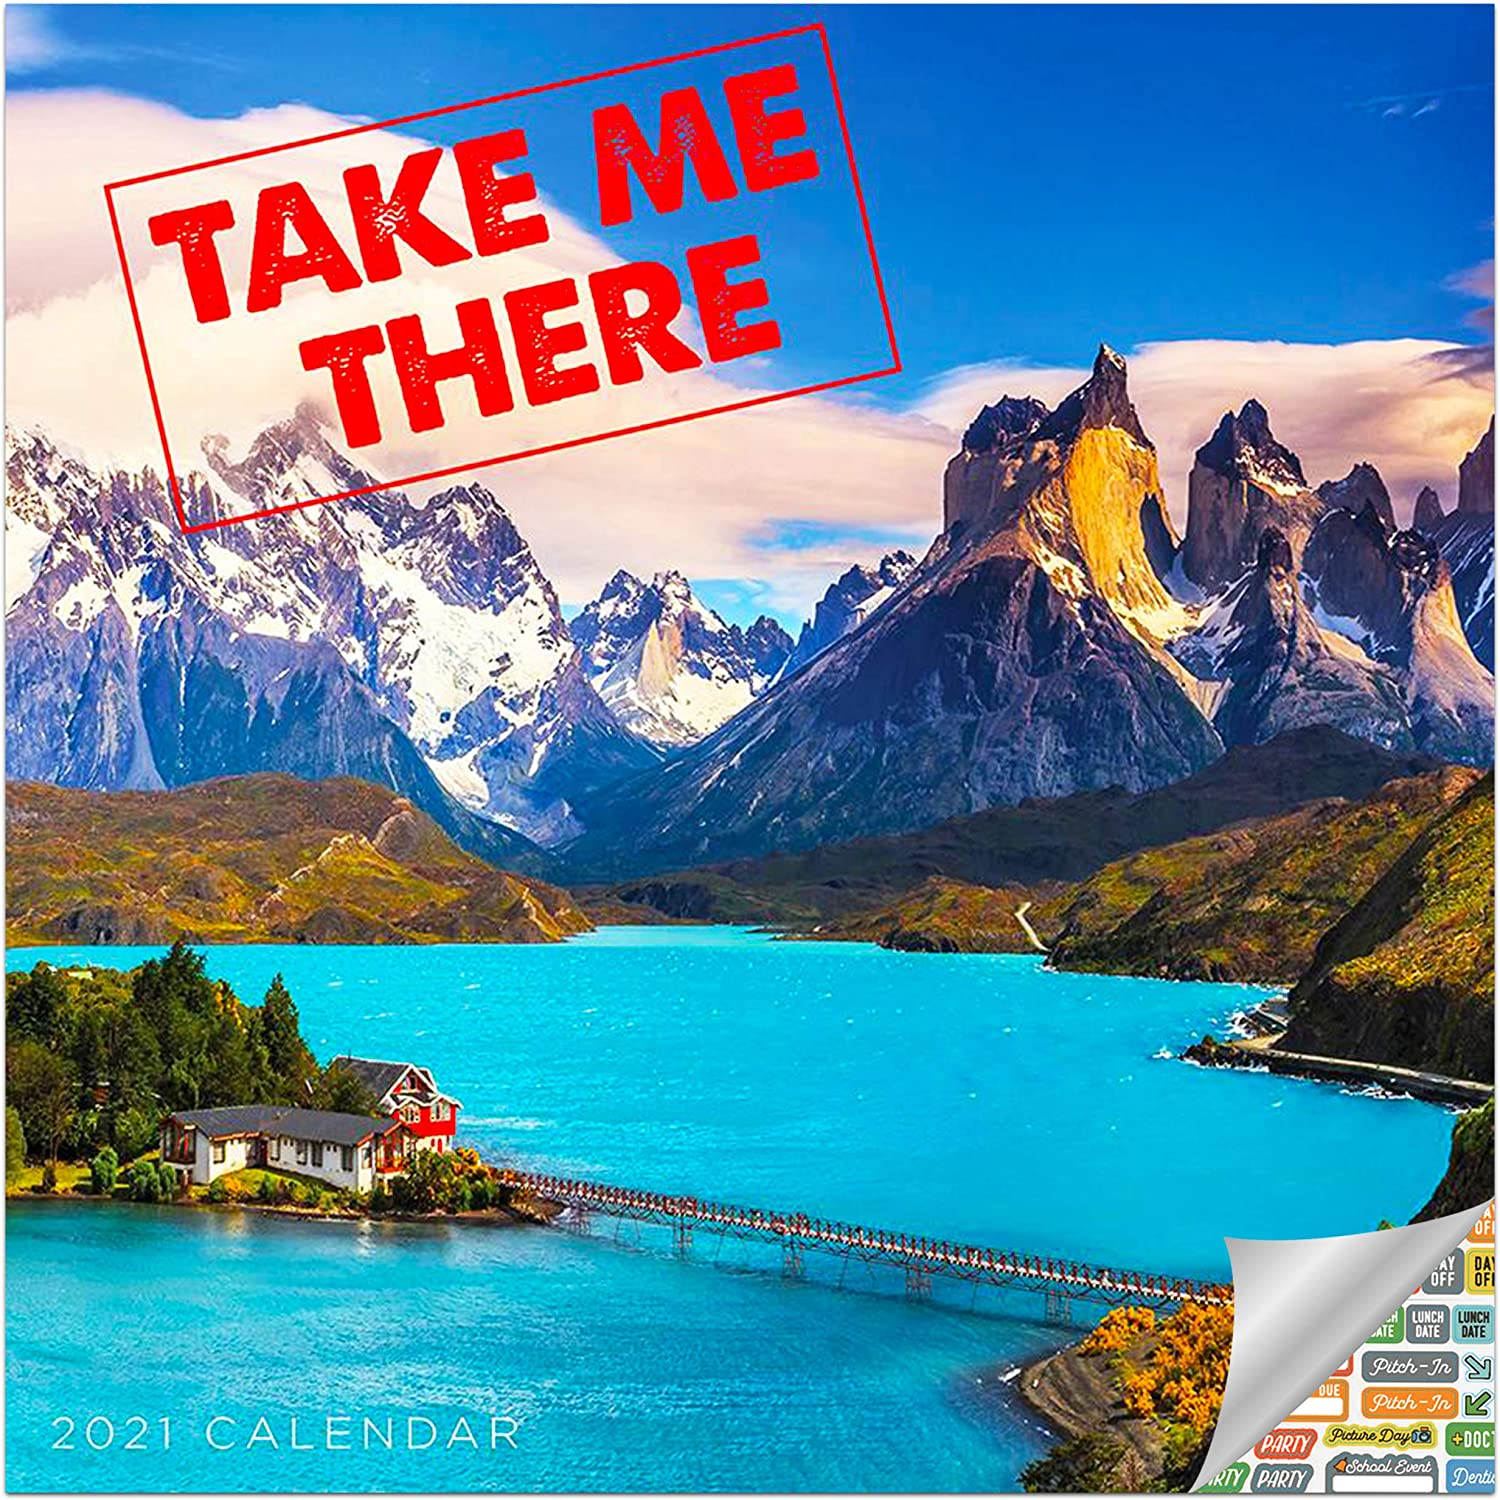 Take Me There Calendar 2021 Bundle - Deluxe 2021 Exotic Places Wall Calendar with Over 100 Calendar Stickers (Travel Gifts, Office Supplies)